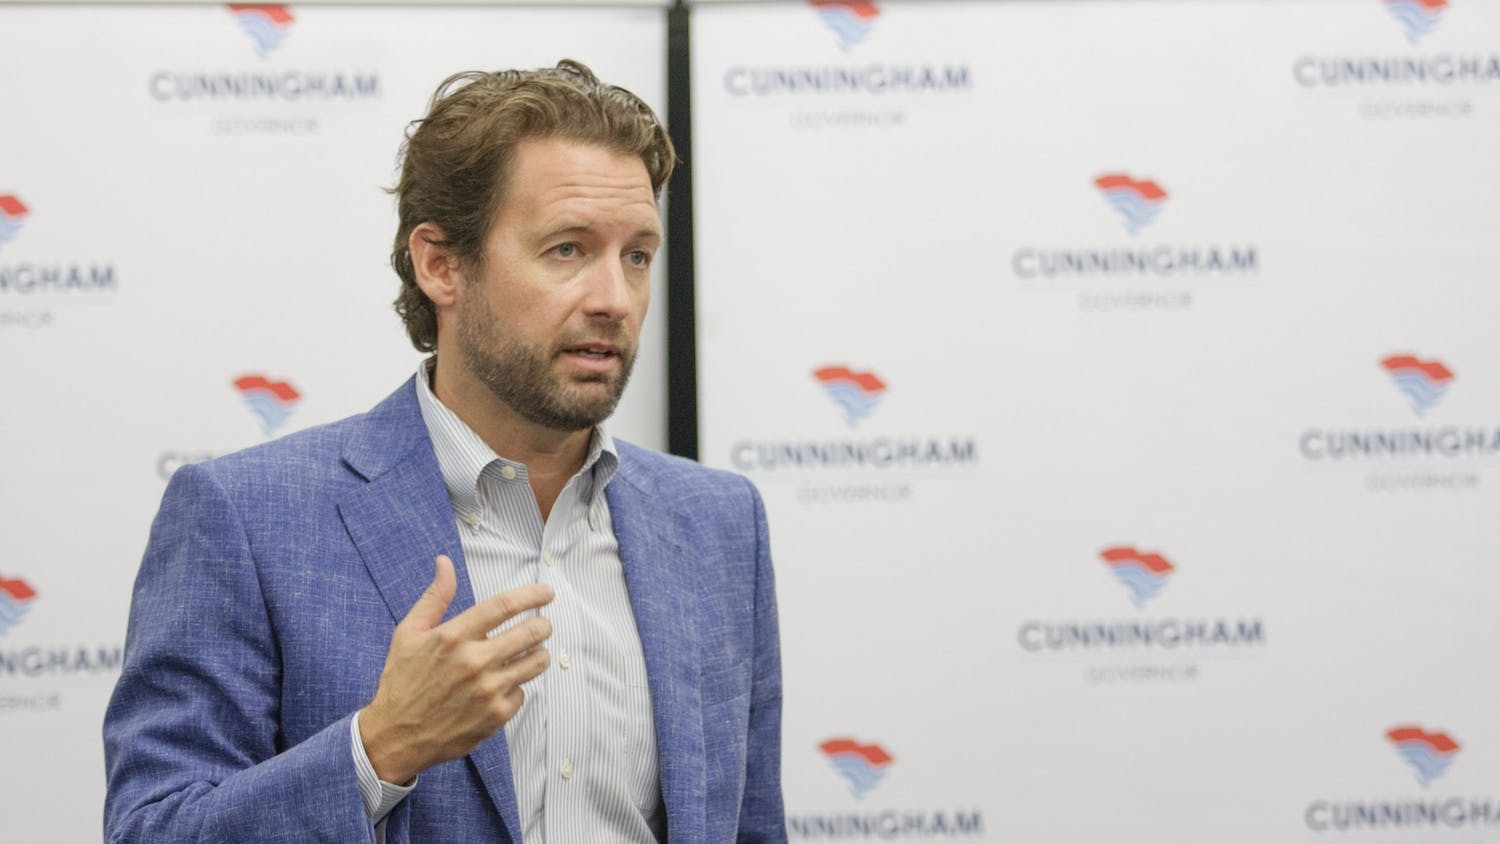 SC Democratic gubernatorial candidate Joe Cunningham speaks to a full room at Russell House.